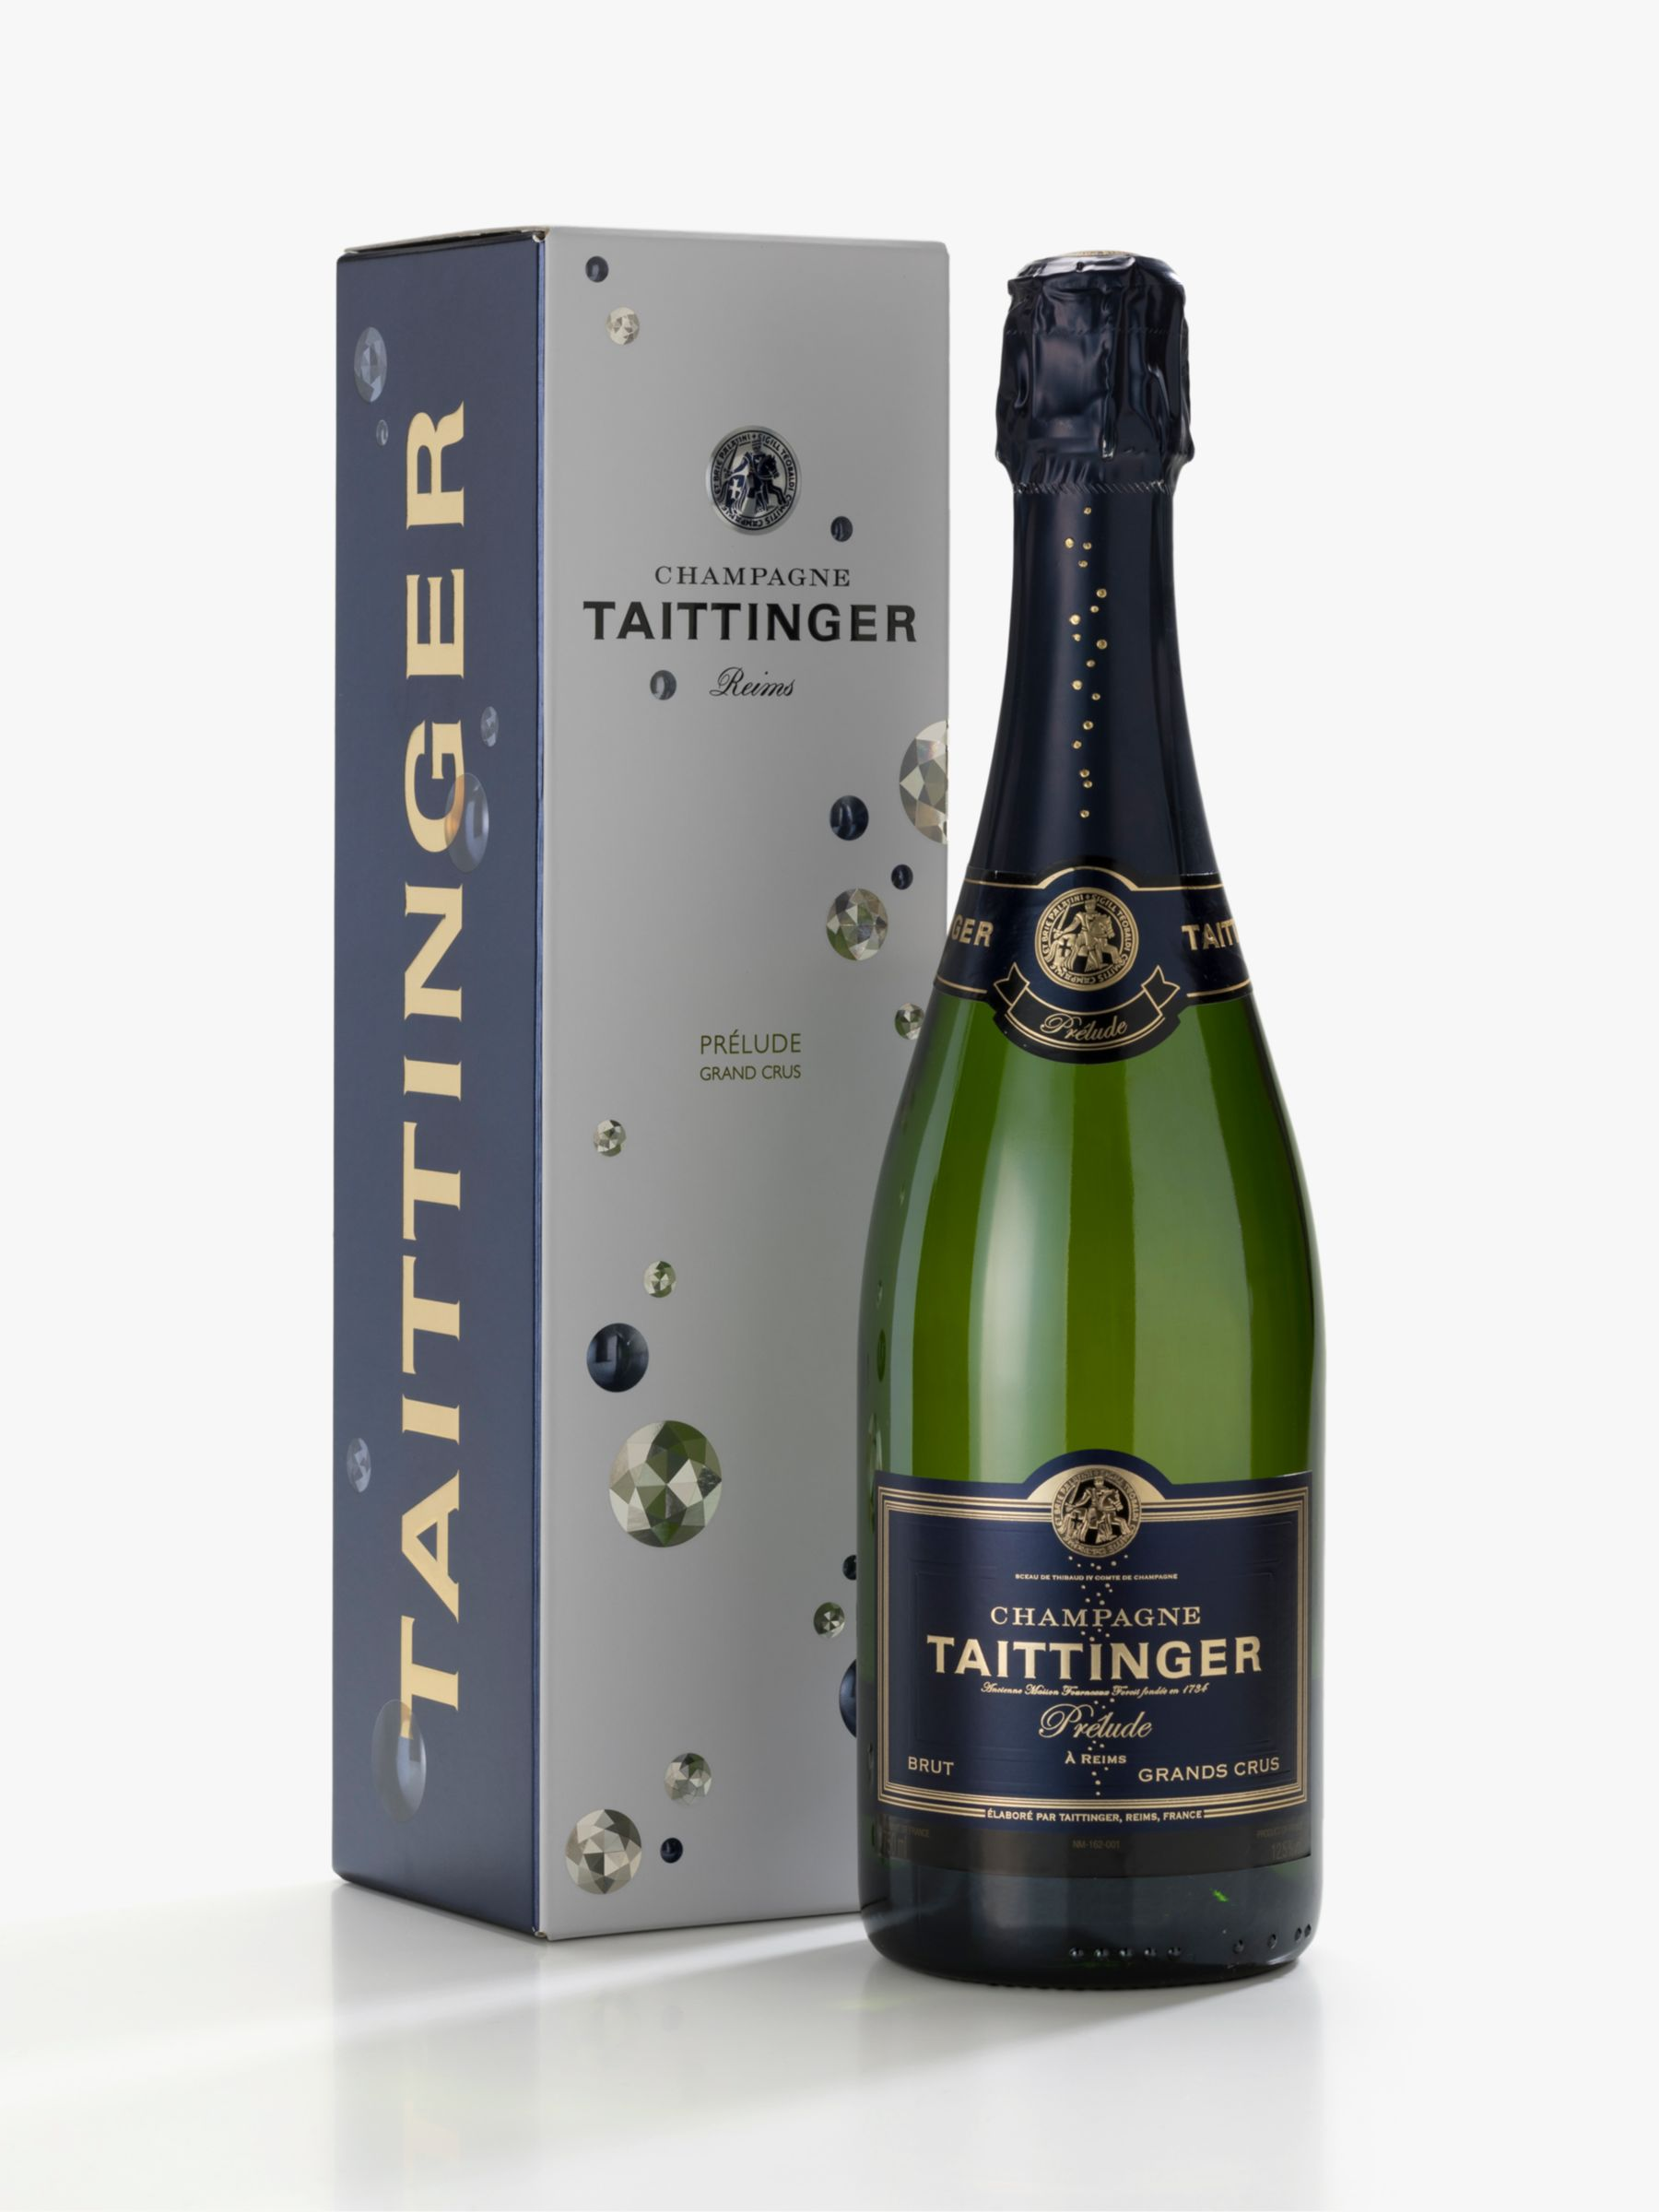 Taittinger Taittinger Prelude Grand Crus Champagne, 75cl